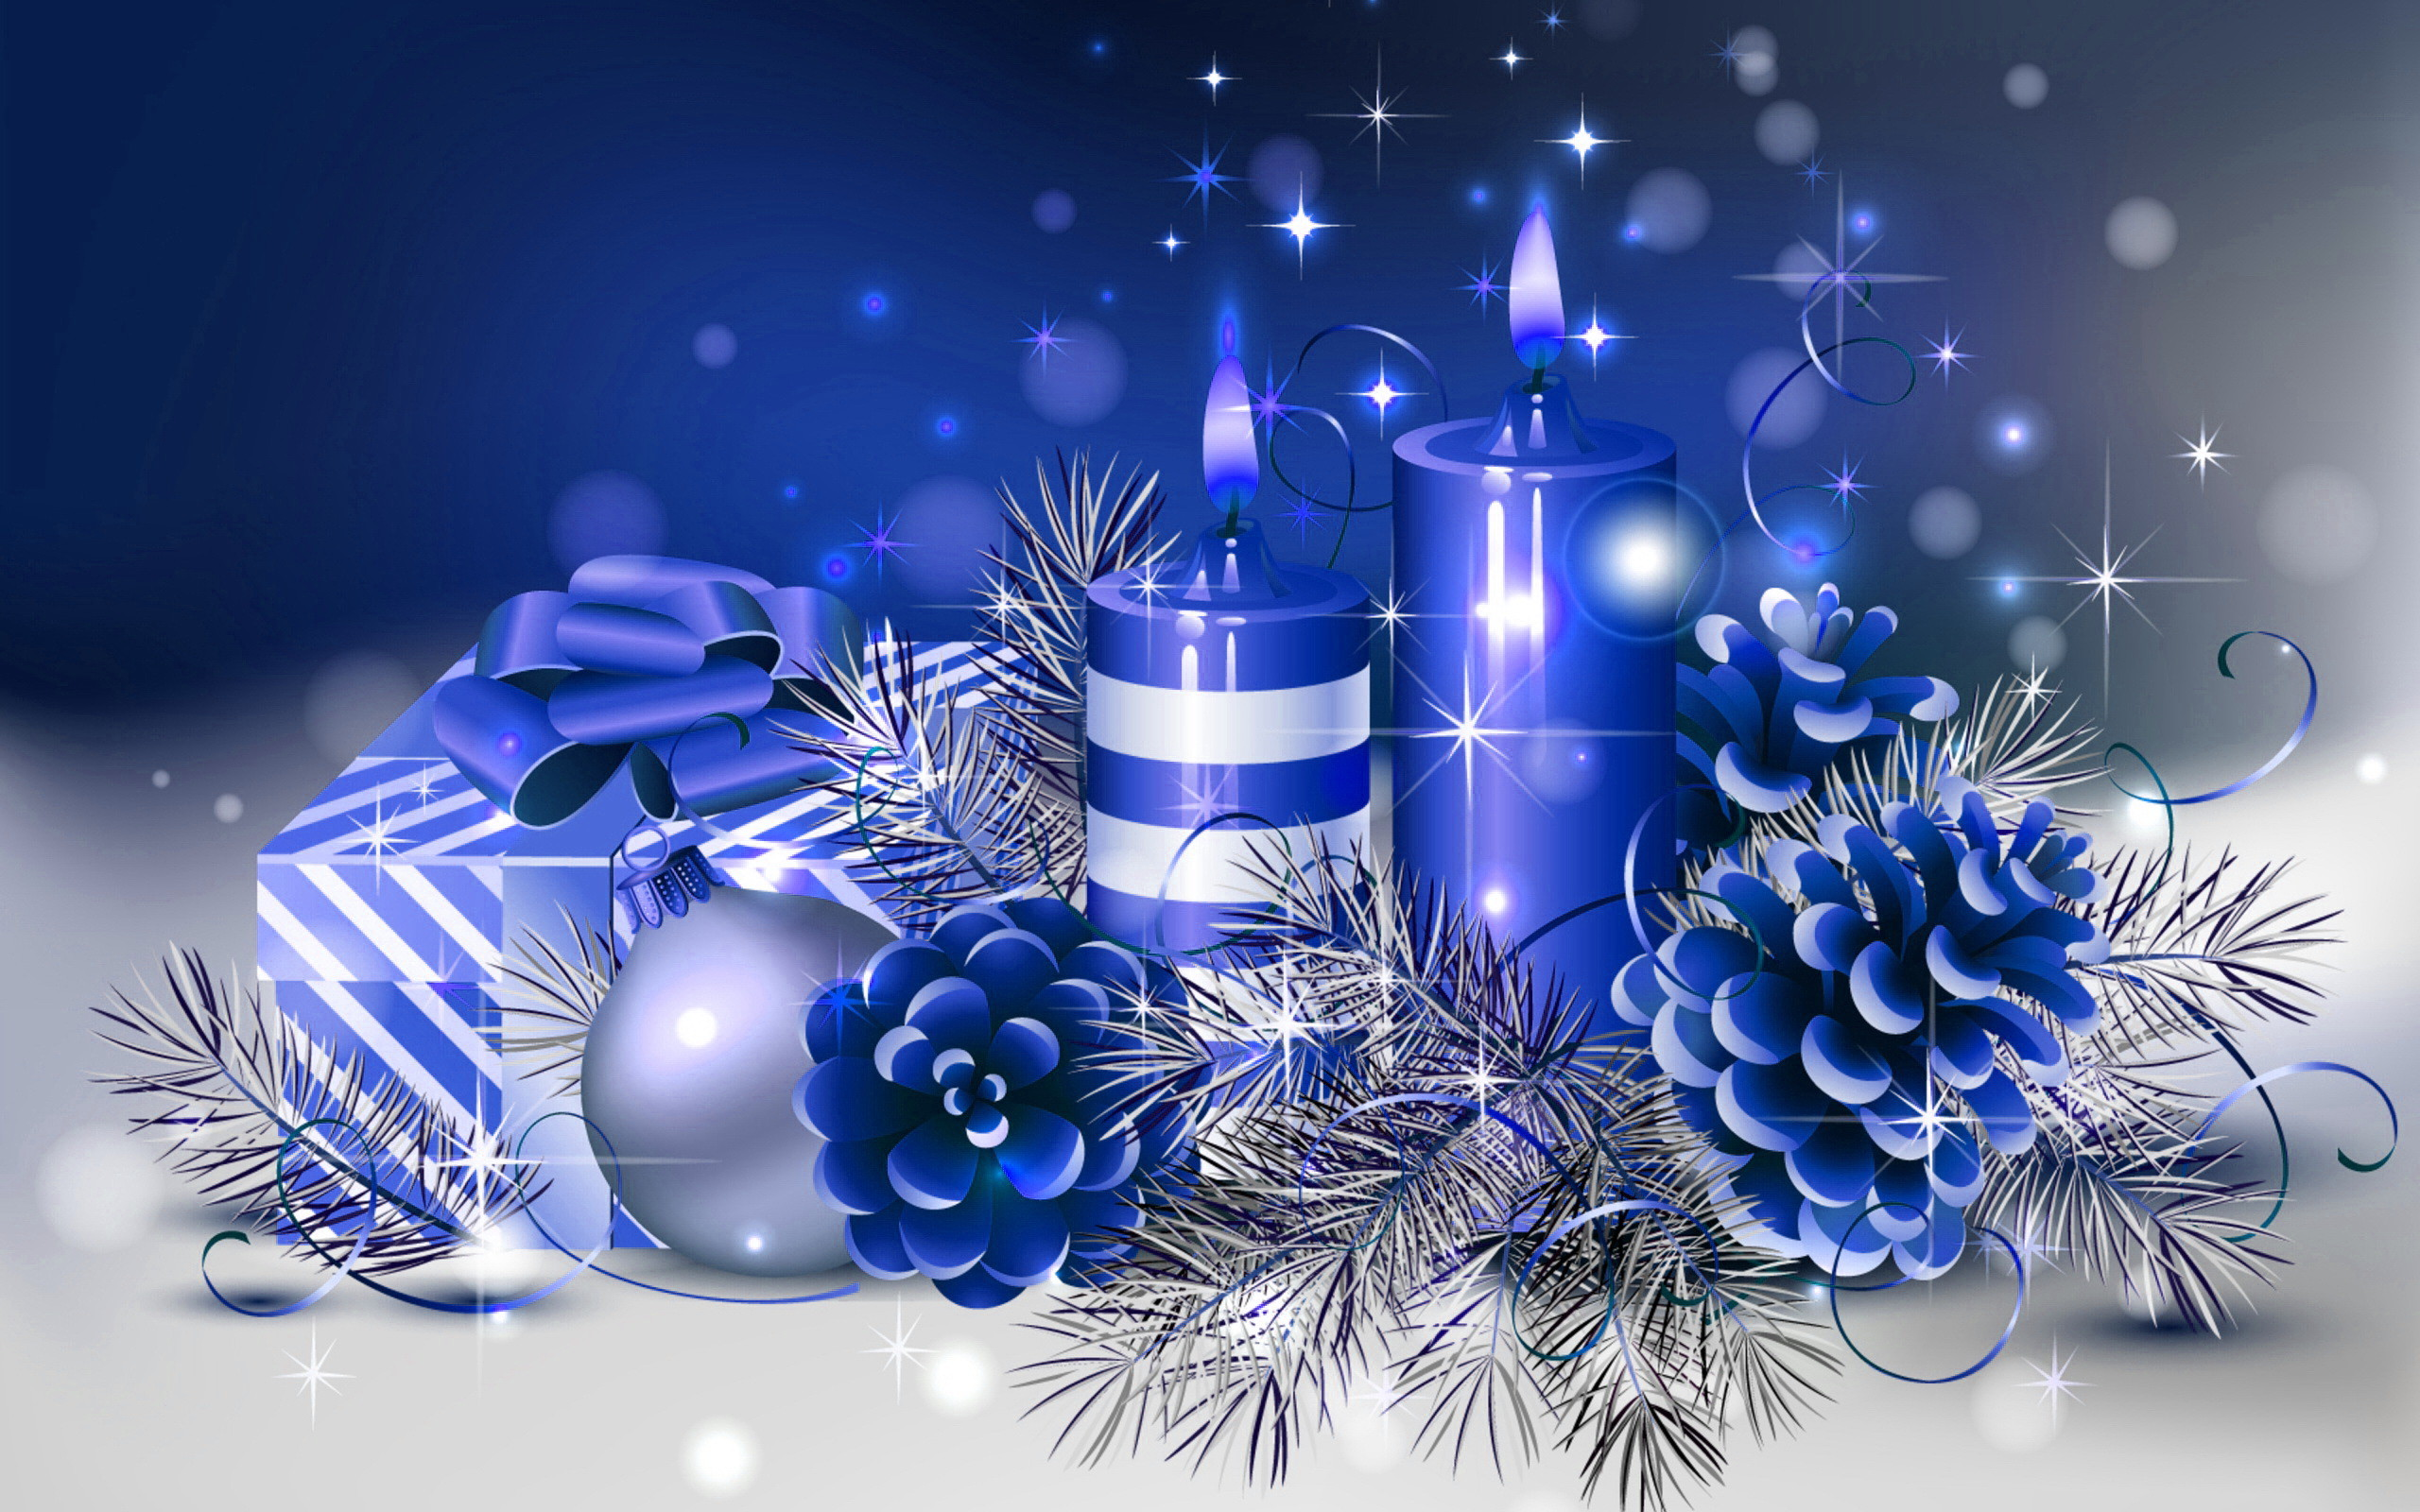 2560x1600 HD Blue Christmas Wallpaper.